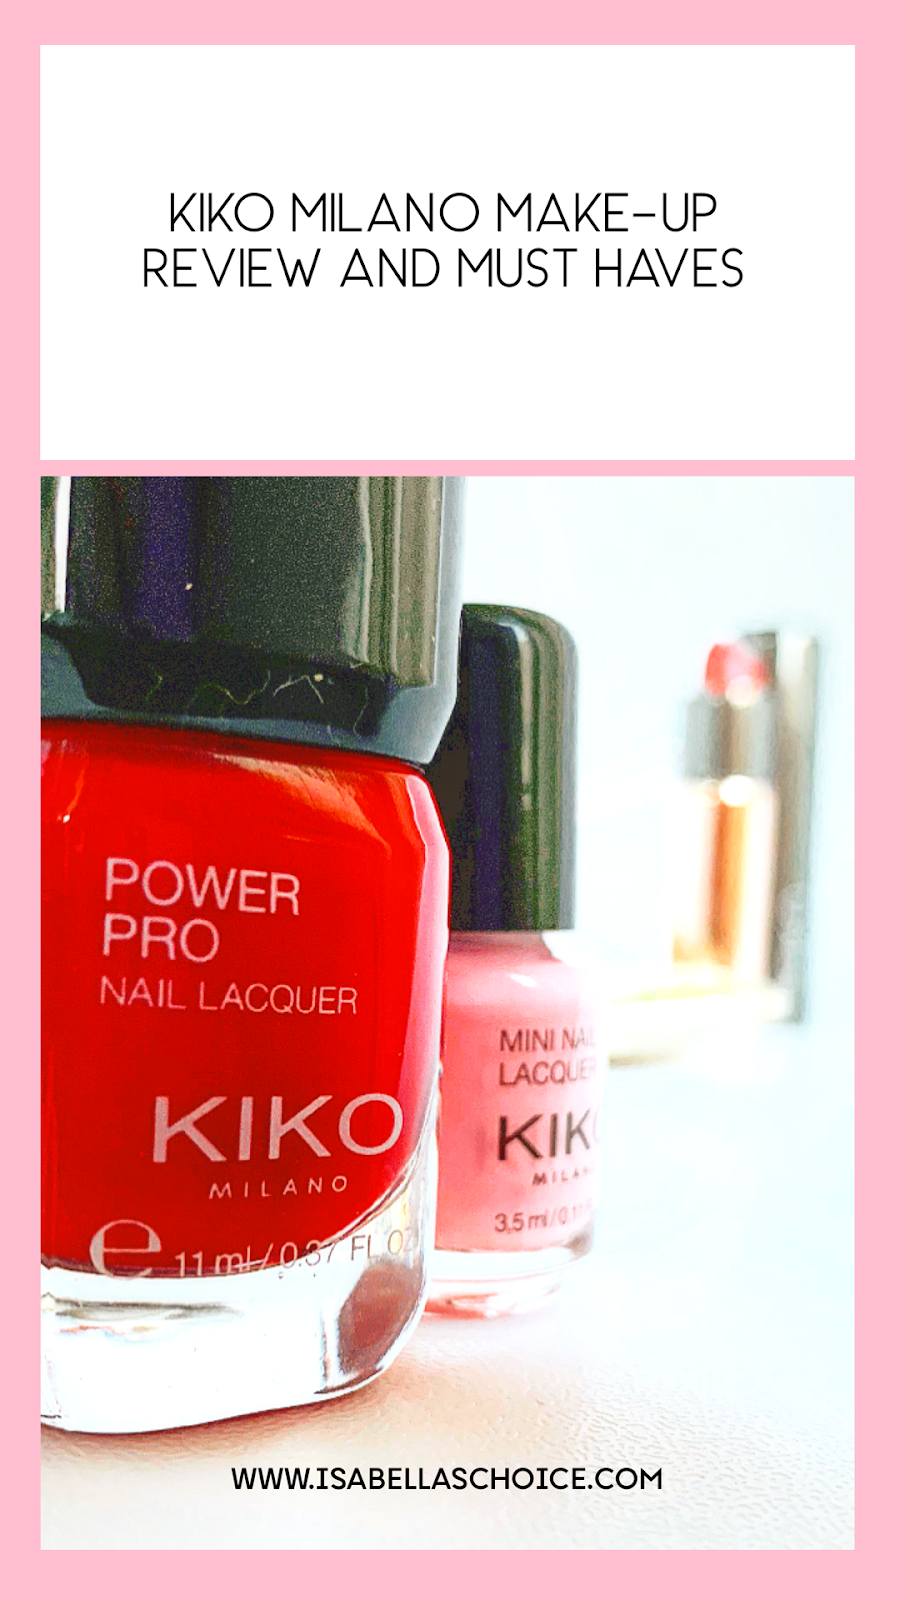 KIKO MILANO MAKE-UP HAUL